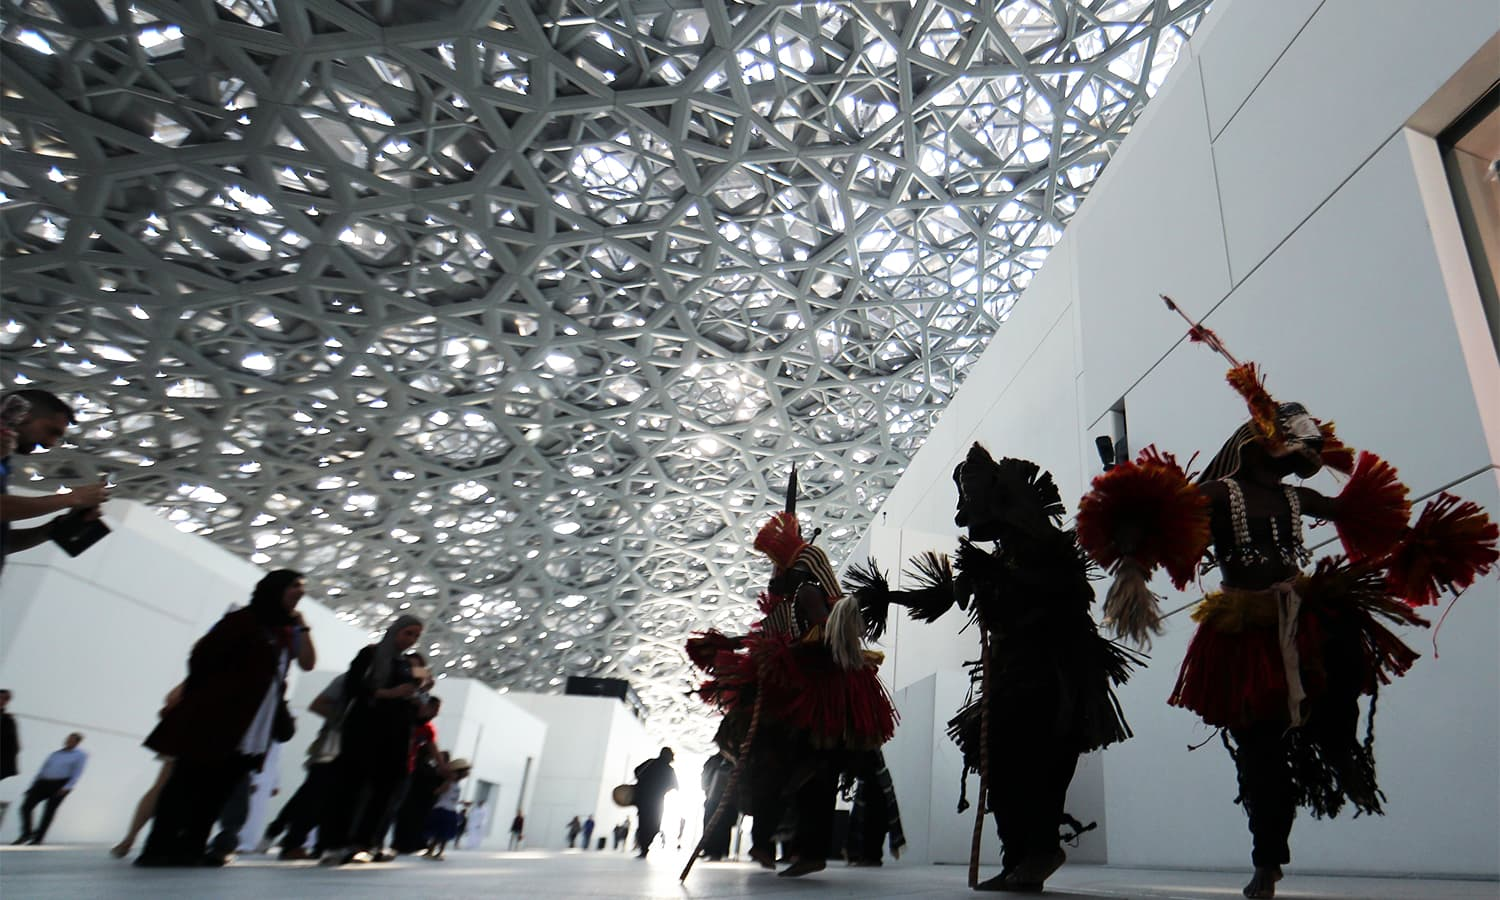 Dancers from the Malian Troupe Awa de Sangha perform during the opening of the Louvre Abu Dhabi Museum. — AFP